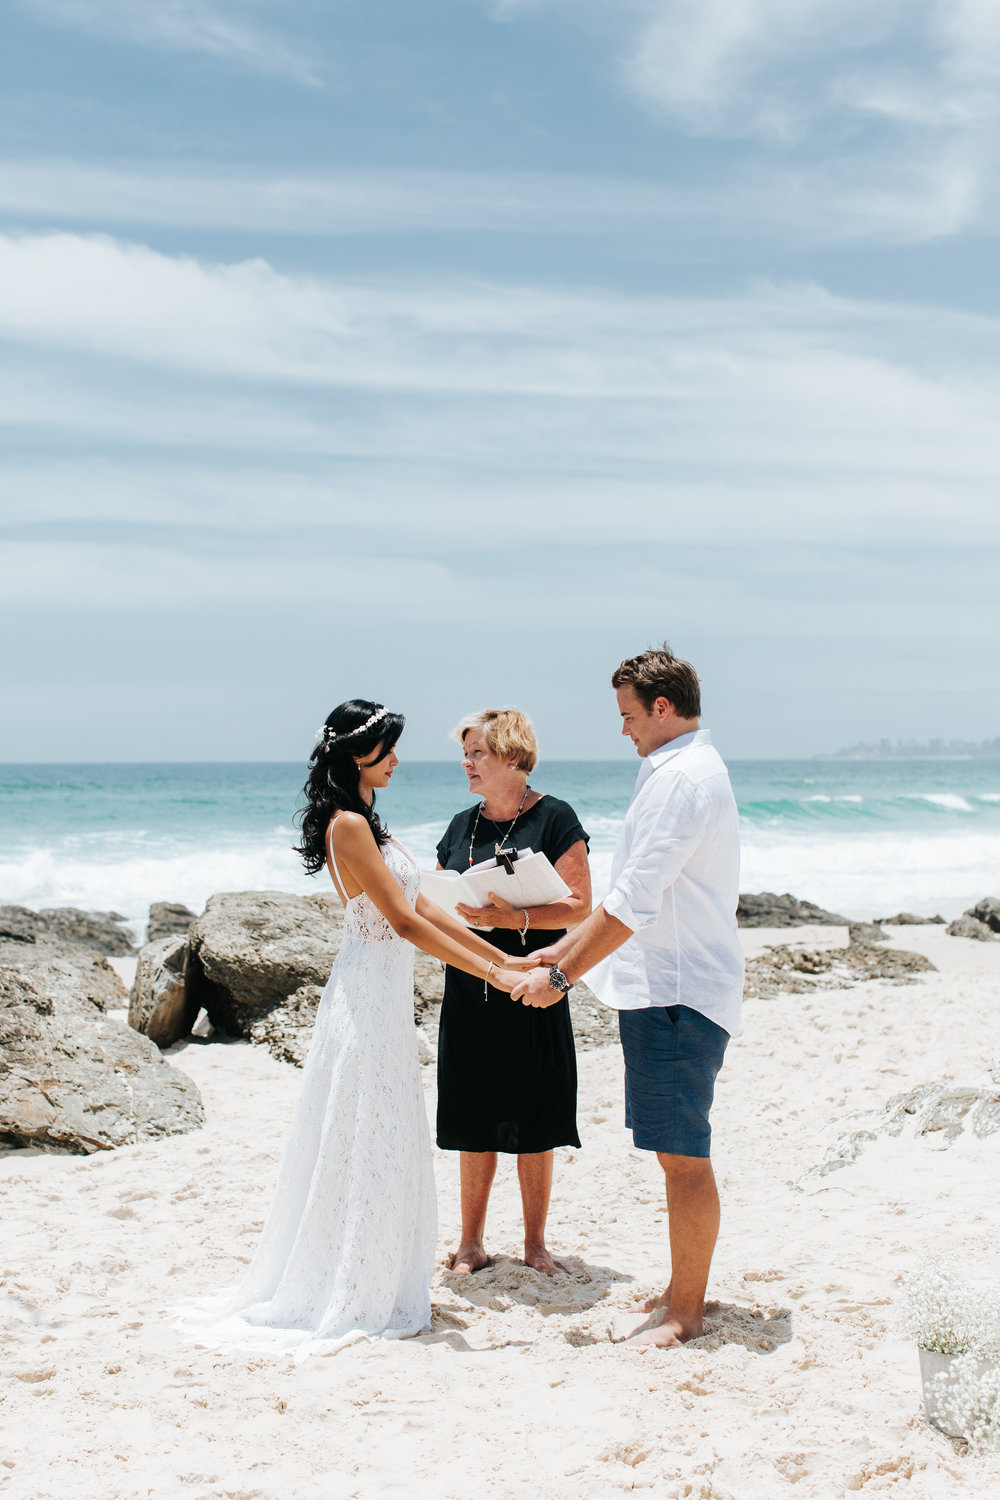 Brisbane family photographer kym renay.walsh.wed 009.jpg